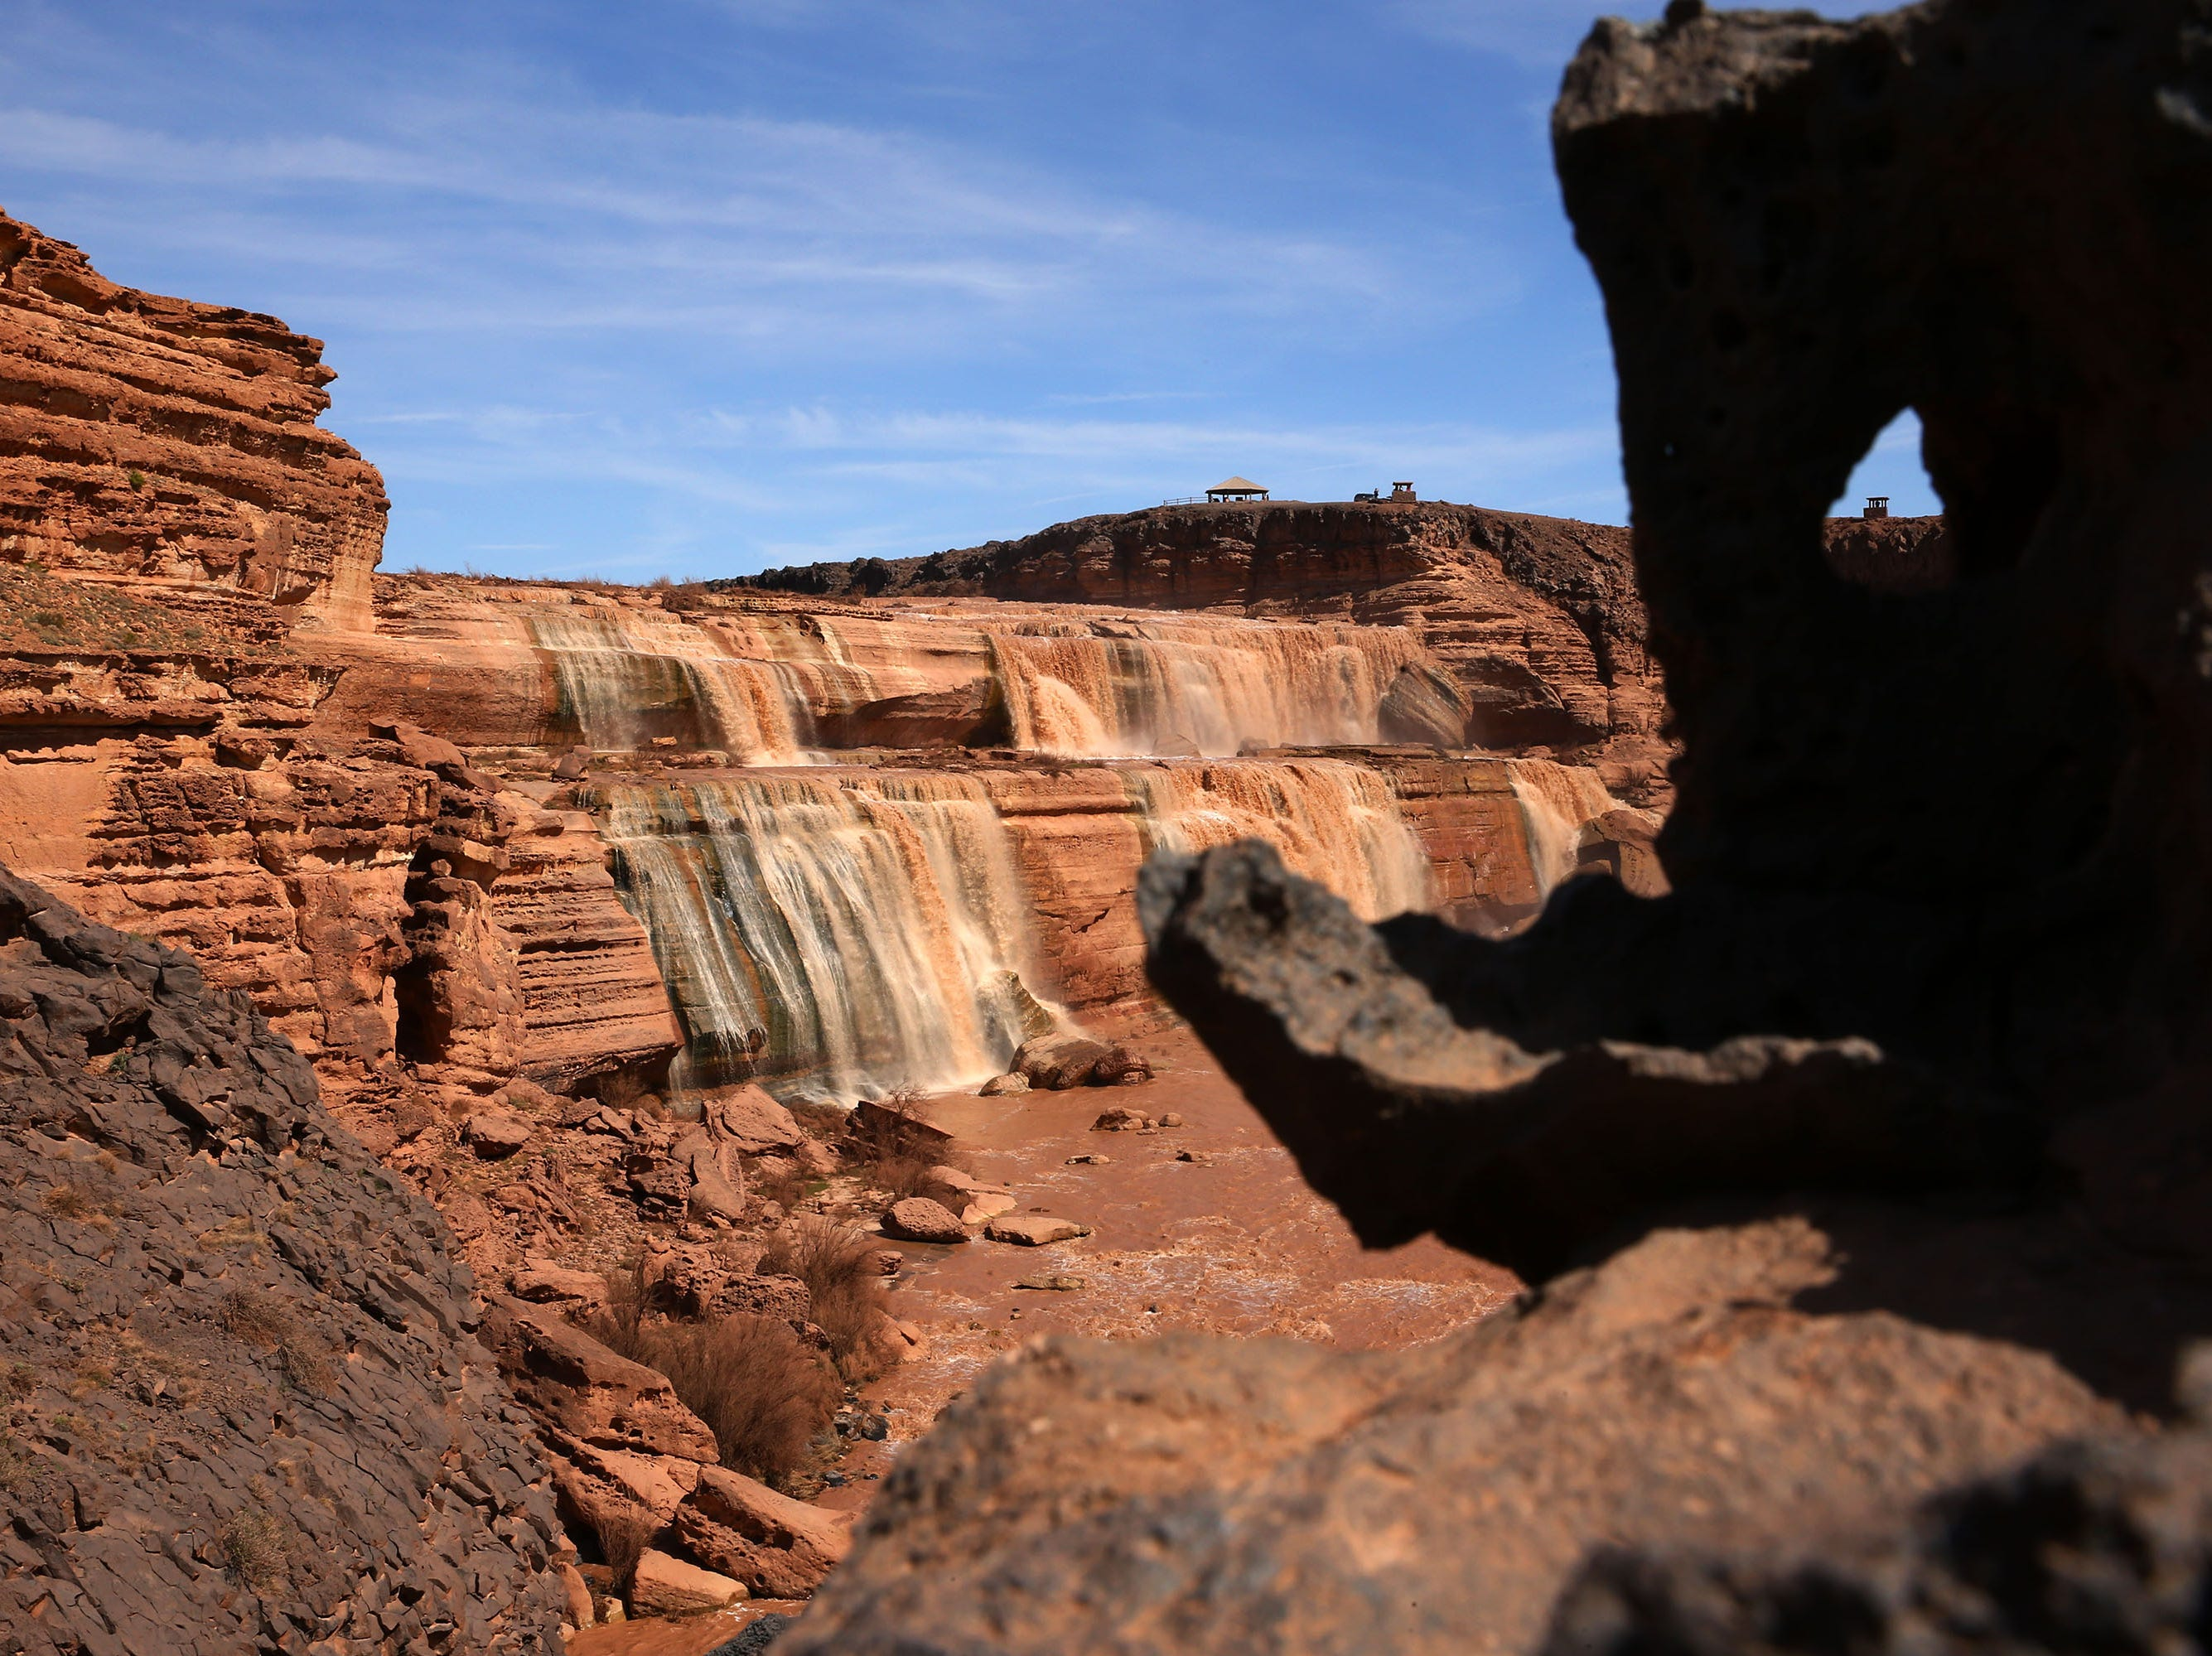 Volcanic rock formation above Grand Falls in the Painted Desert on the Navajo Nation on March 28, 2019, near Leupp, Arizona. Melted snow and rain travels down the Little Colorado River to the 185-foot fall a.k.a. Chocolate Falls. Grand Falls is 18 feet taller than Niagara Falls.